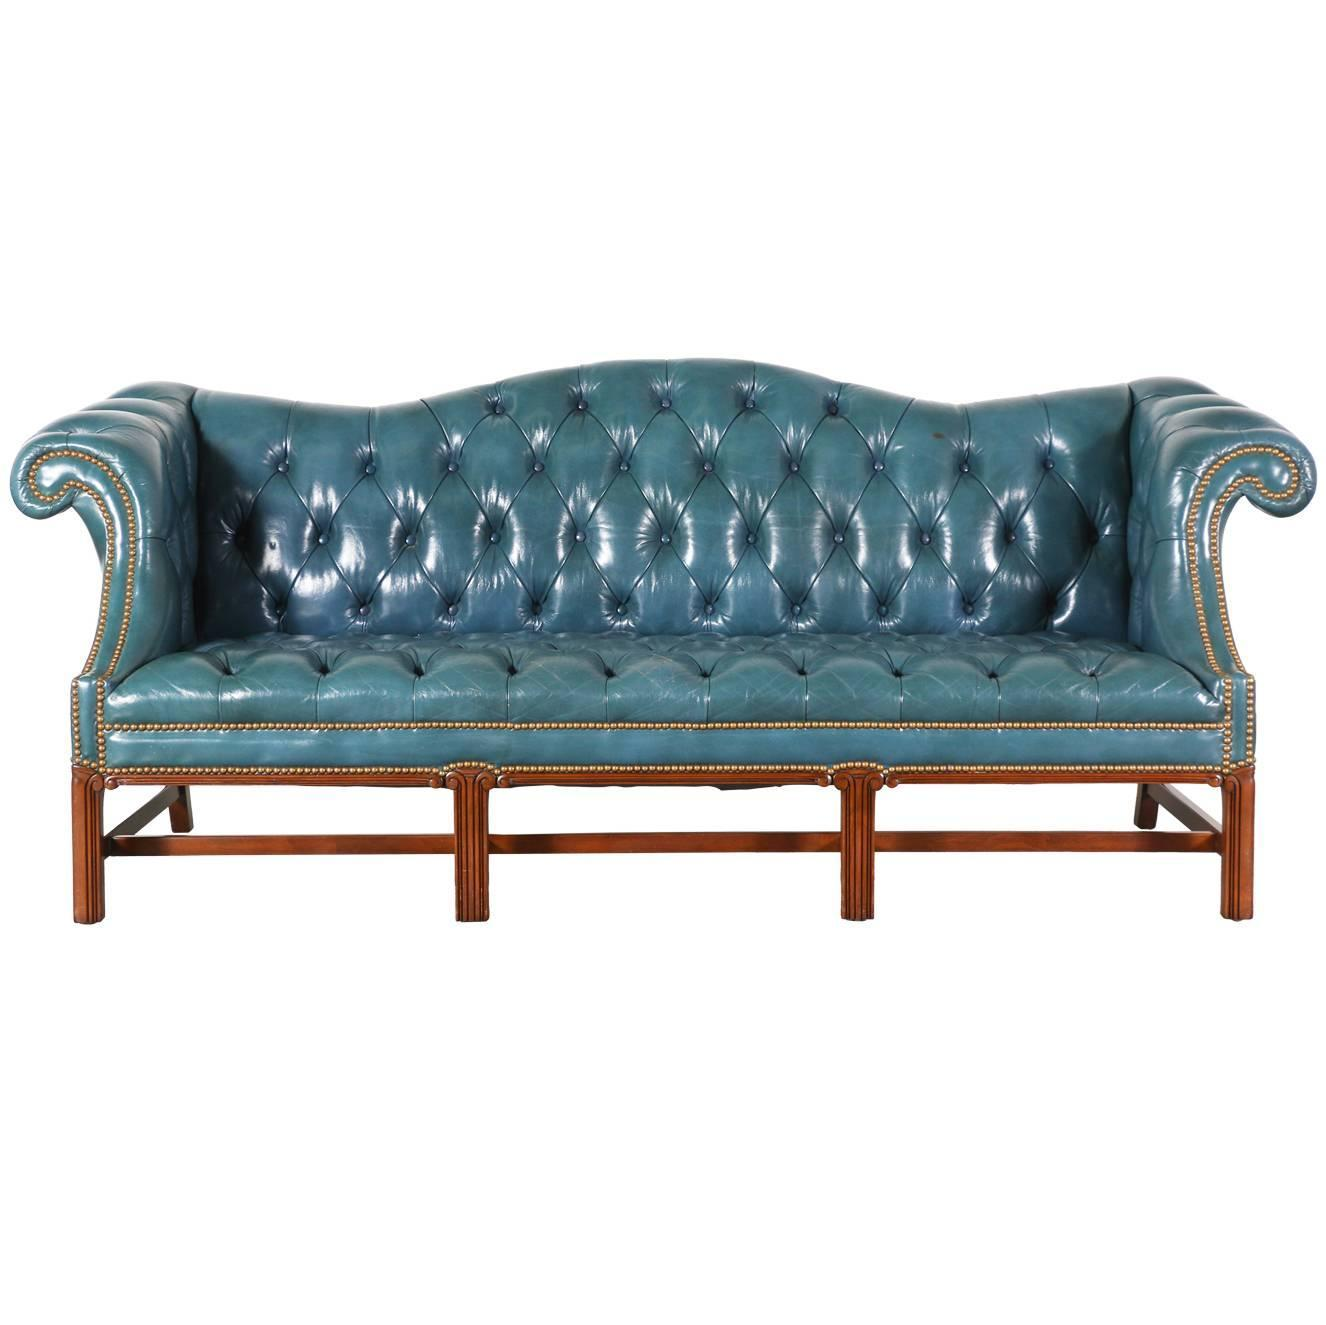 Vintage english leather teal blue chesterfield sofa at 1stdibs for Teal leather couch